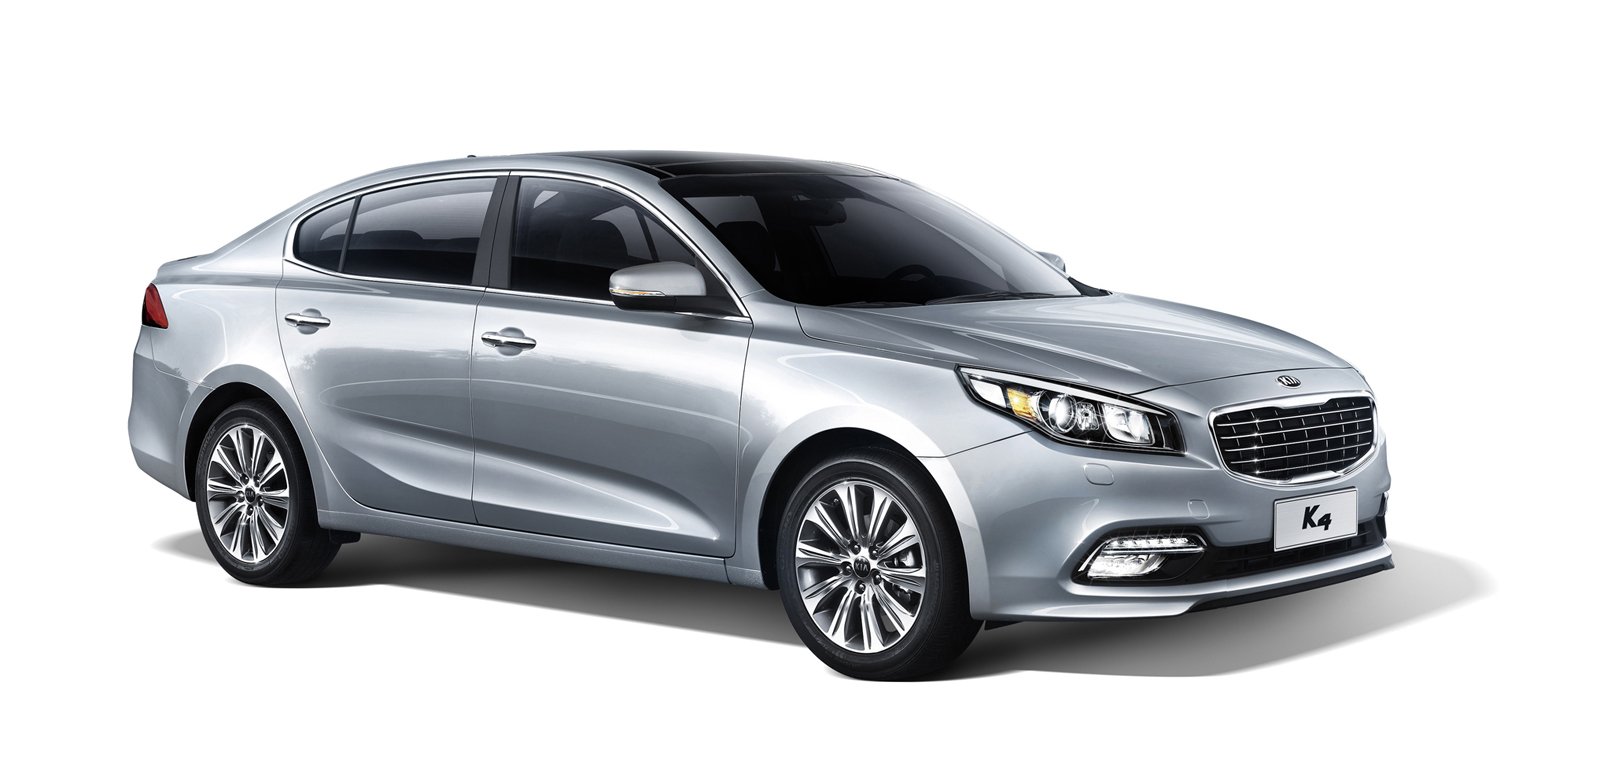 Kia Unveils K4 Sedan in China - autoevolution